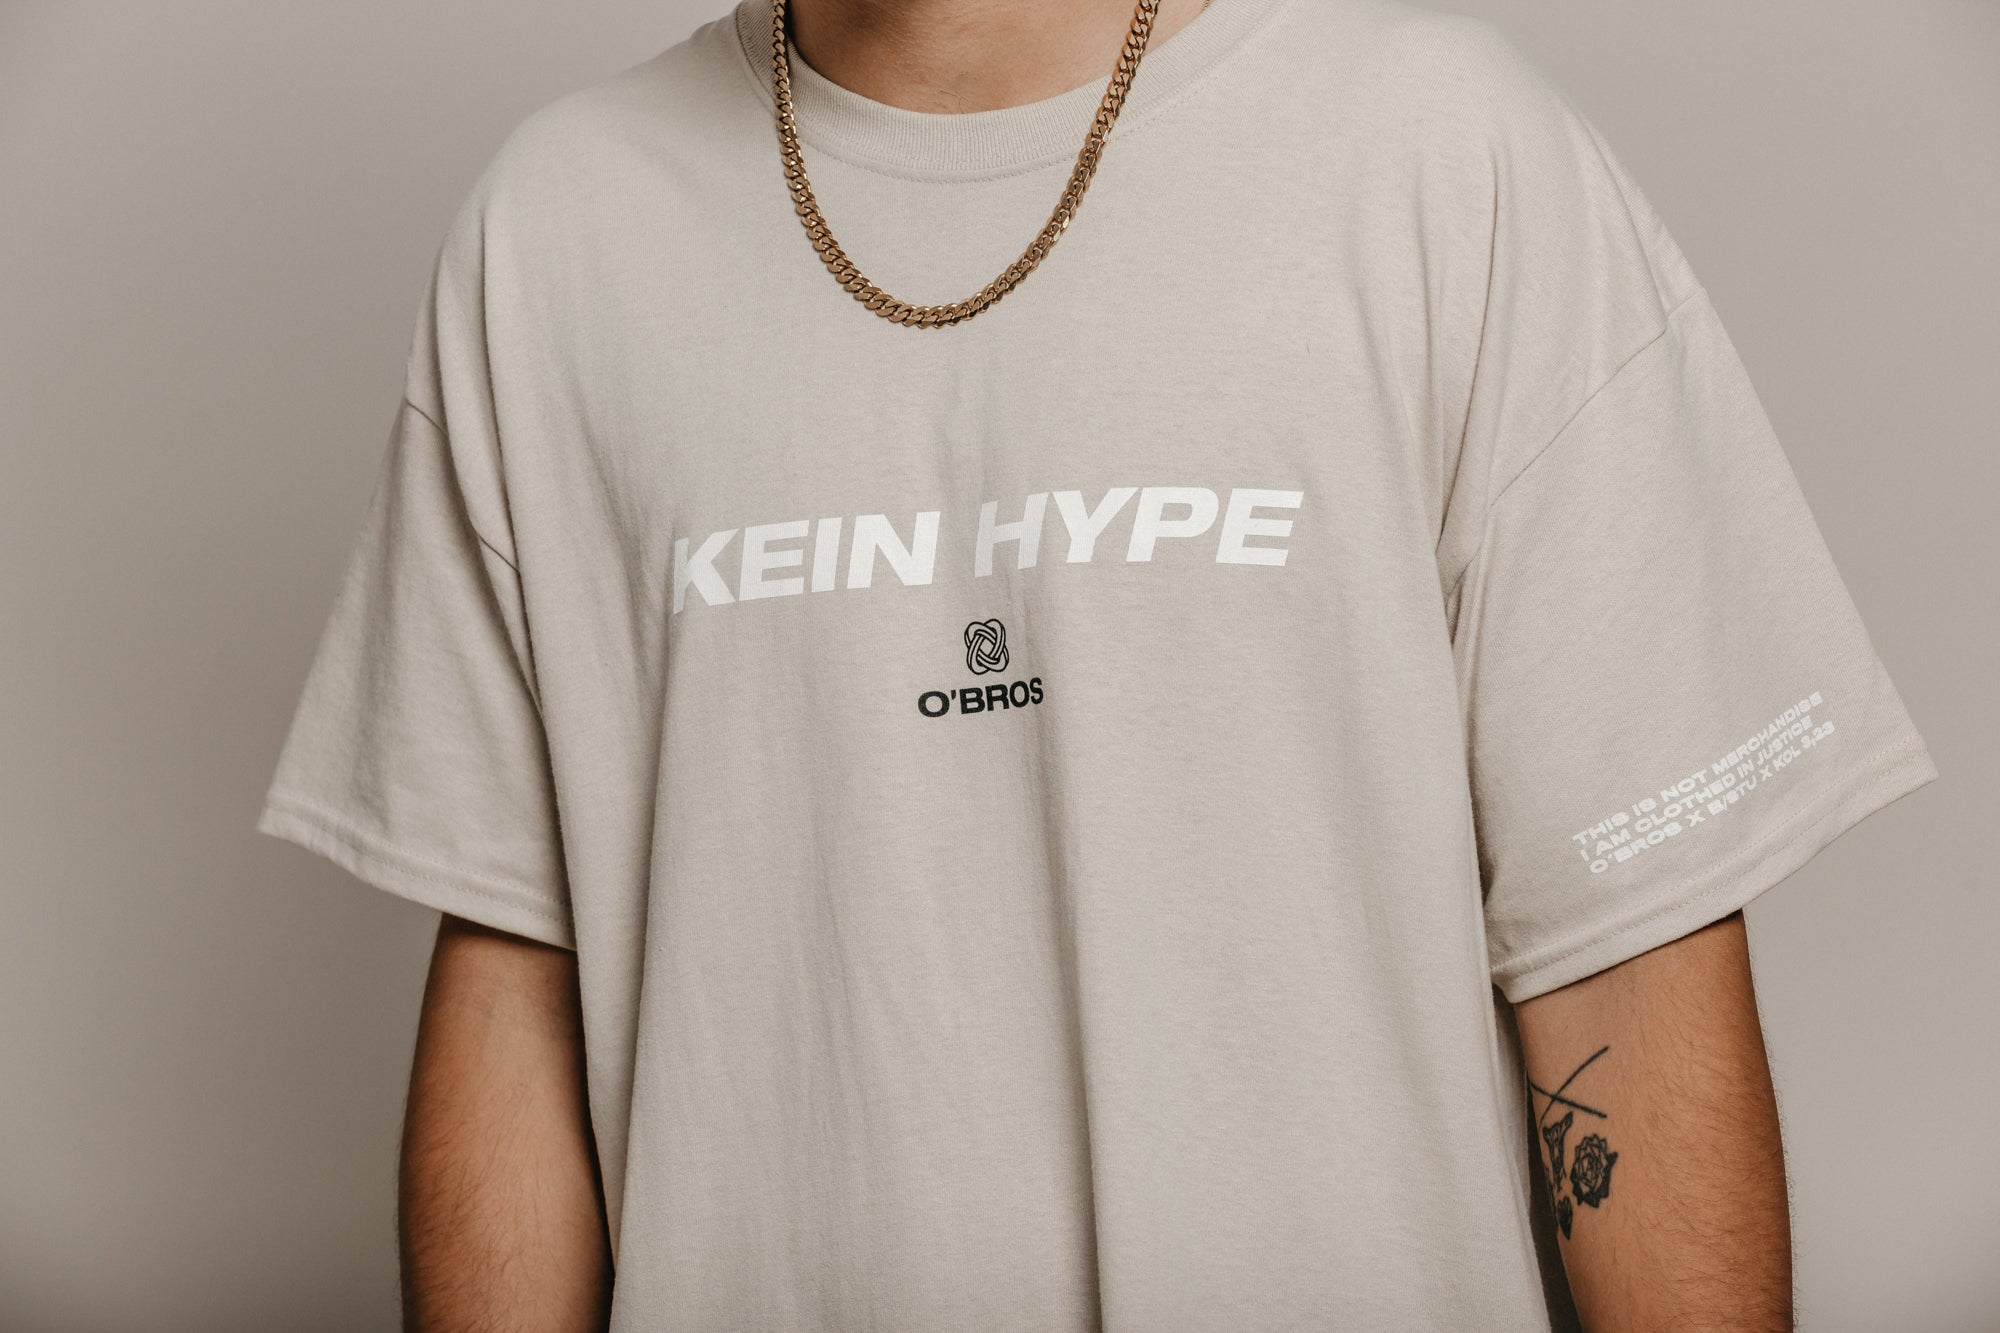 KEIN HYPE SHIRT